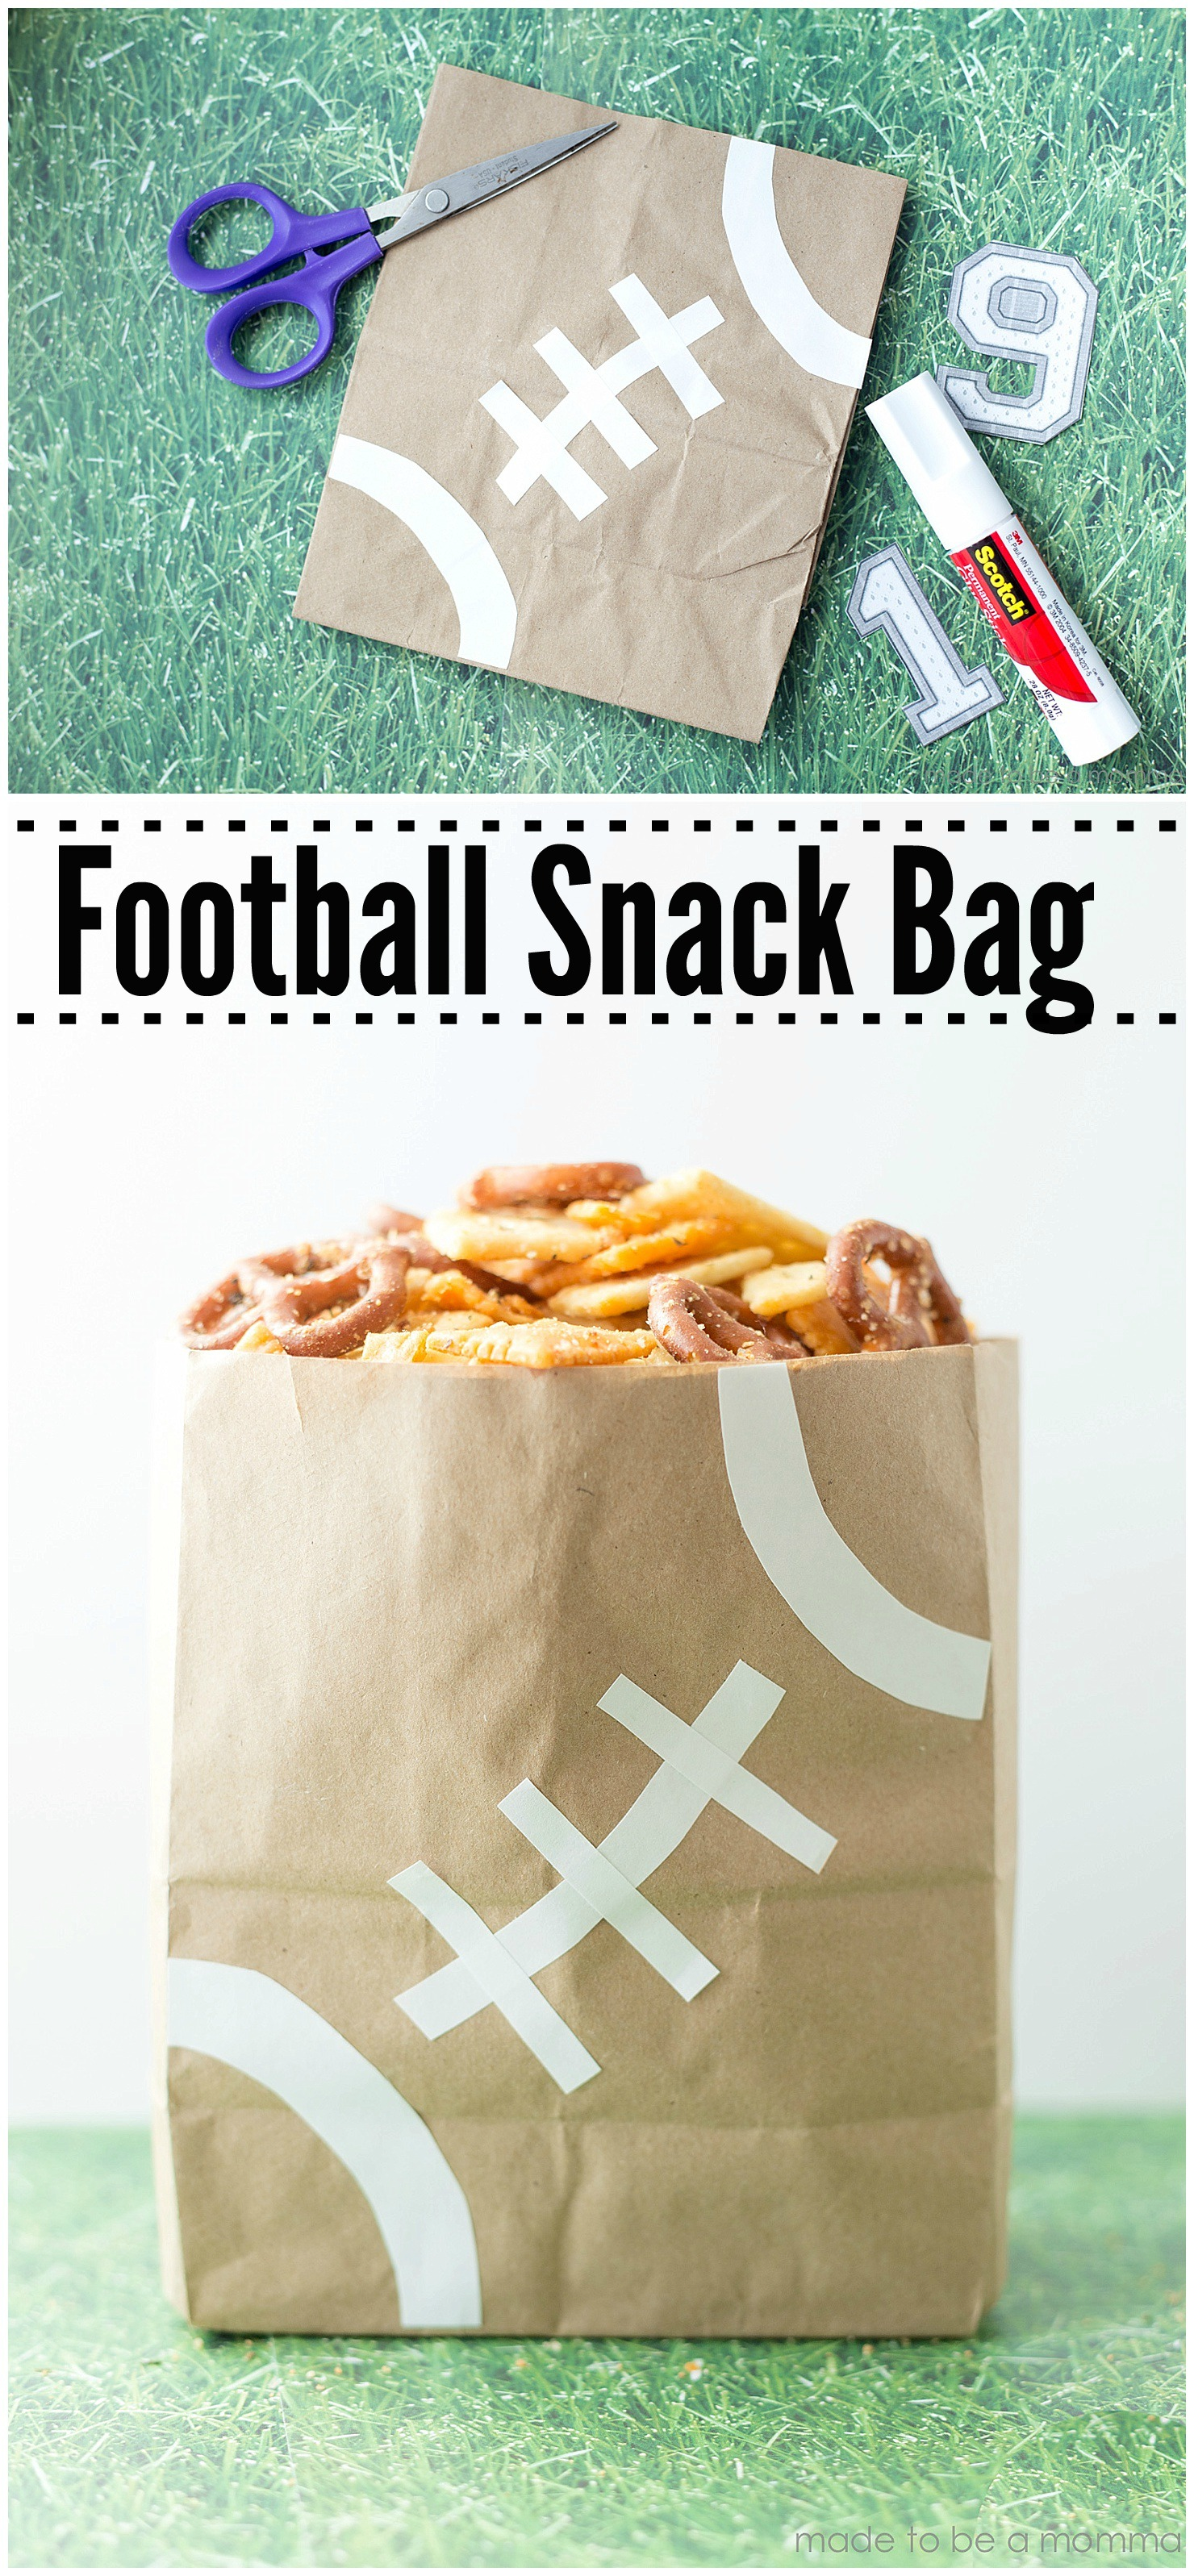 Football Snack Bag easy superbowl party idea